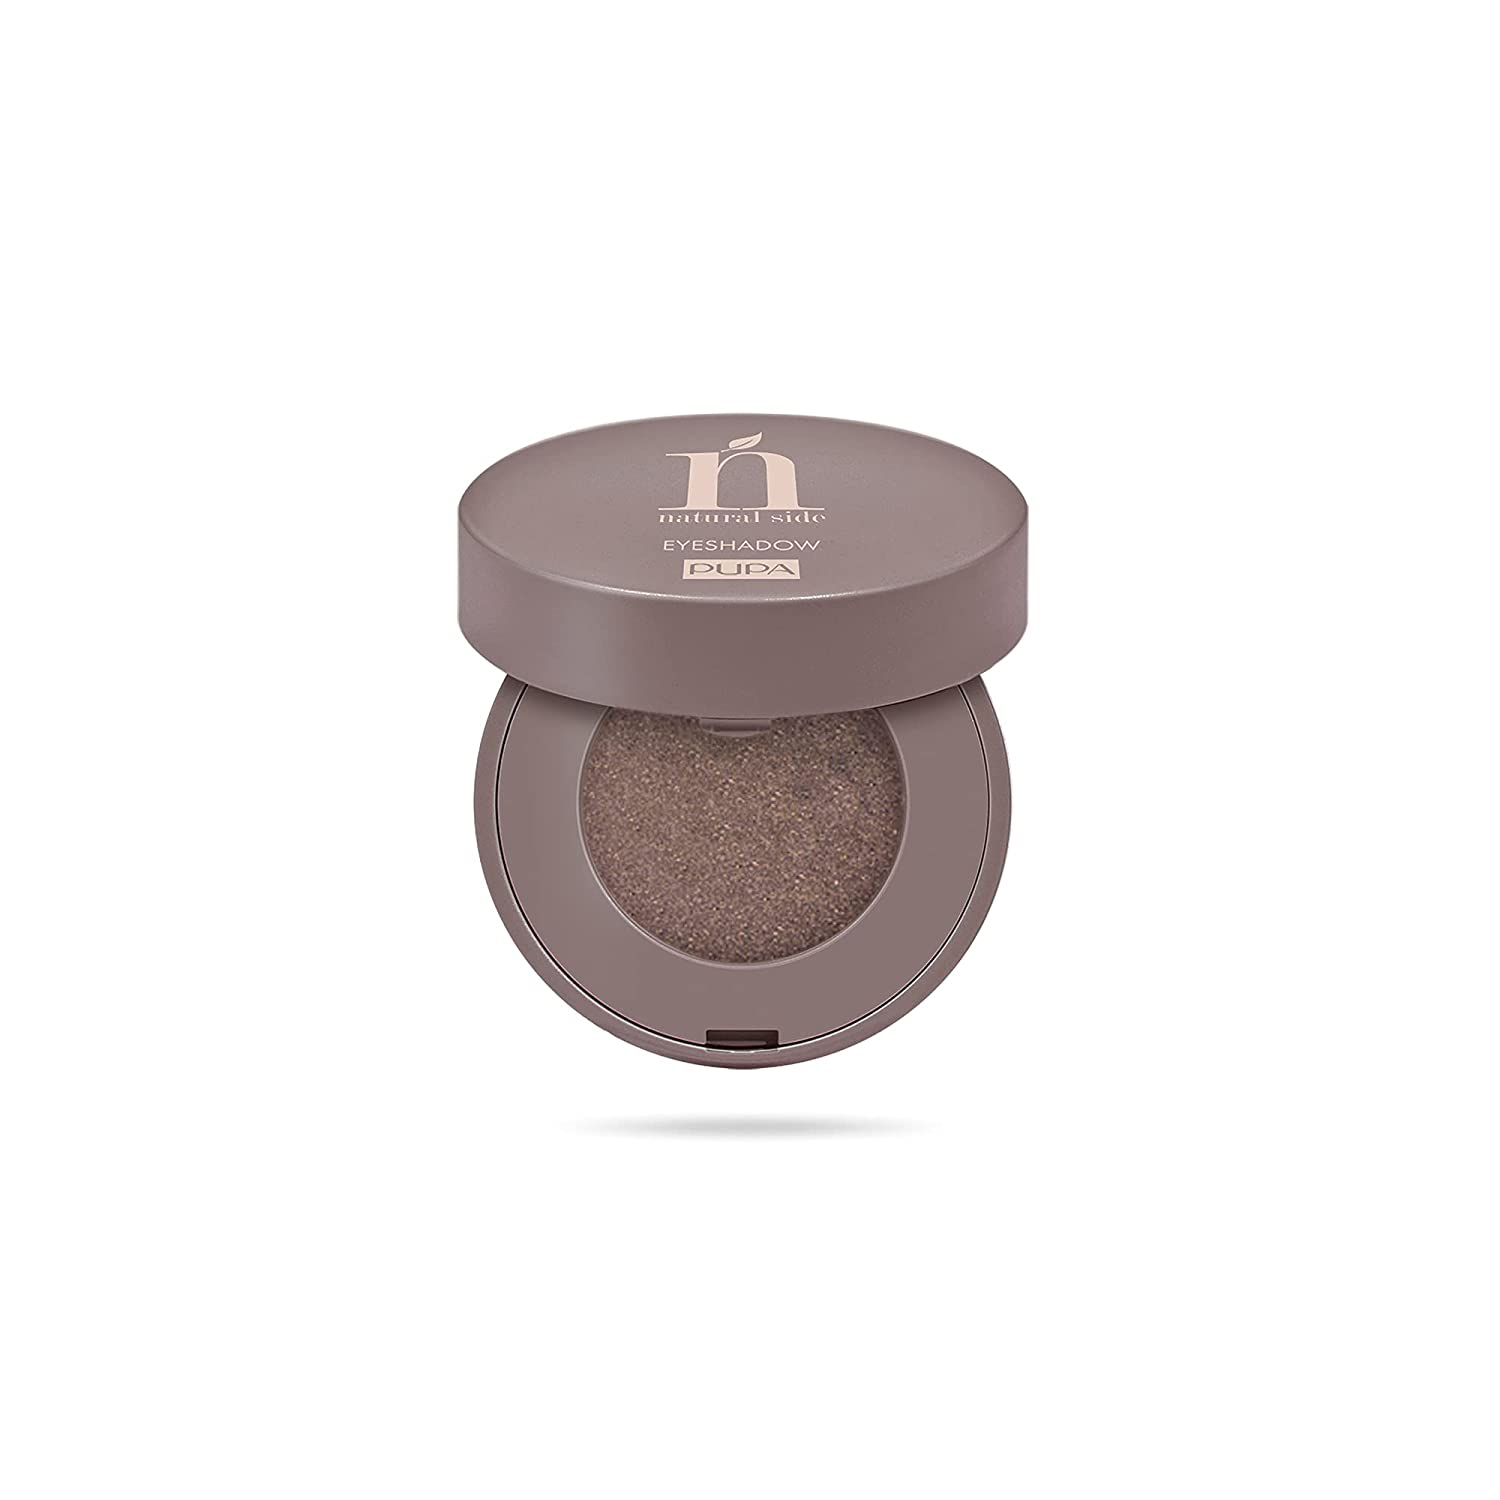 Natural Side Compact Eyeshadow – 008 Chocolate Brown by Pupa Milano for Women – 0.07 oz Eye Shadow